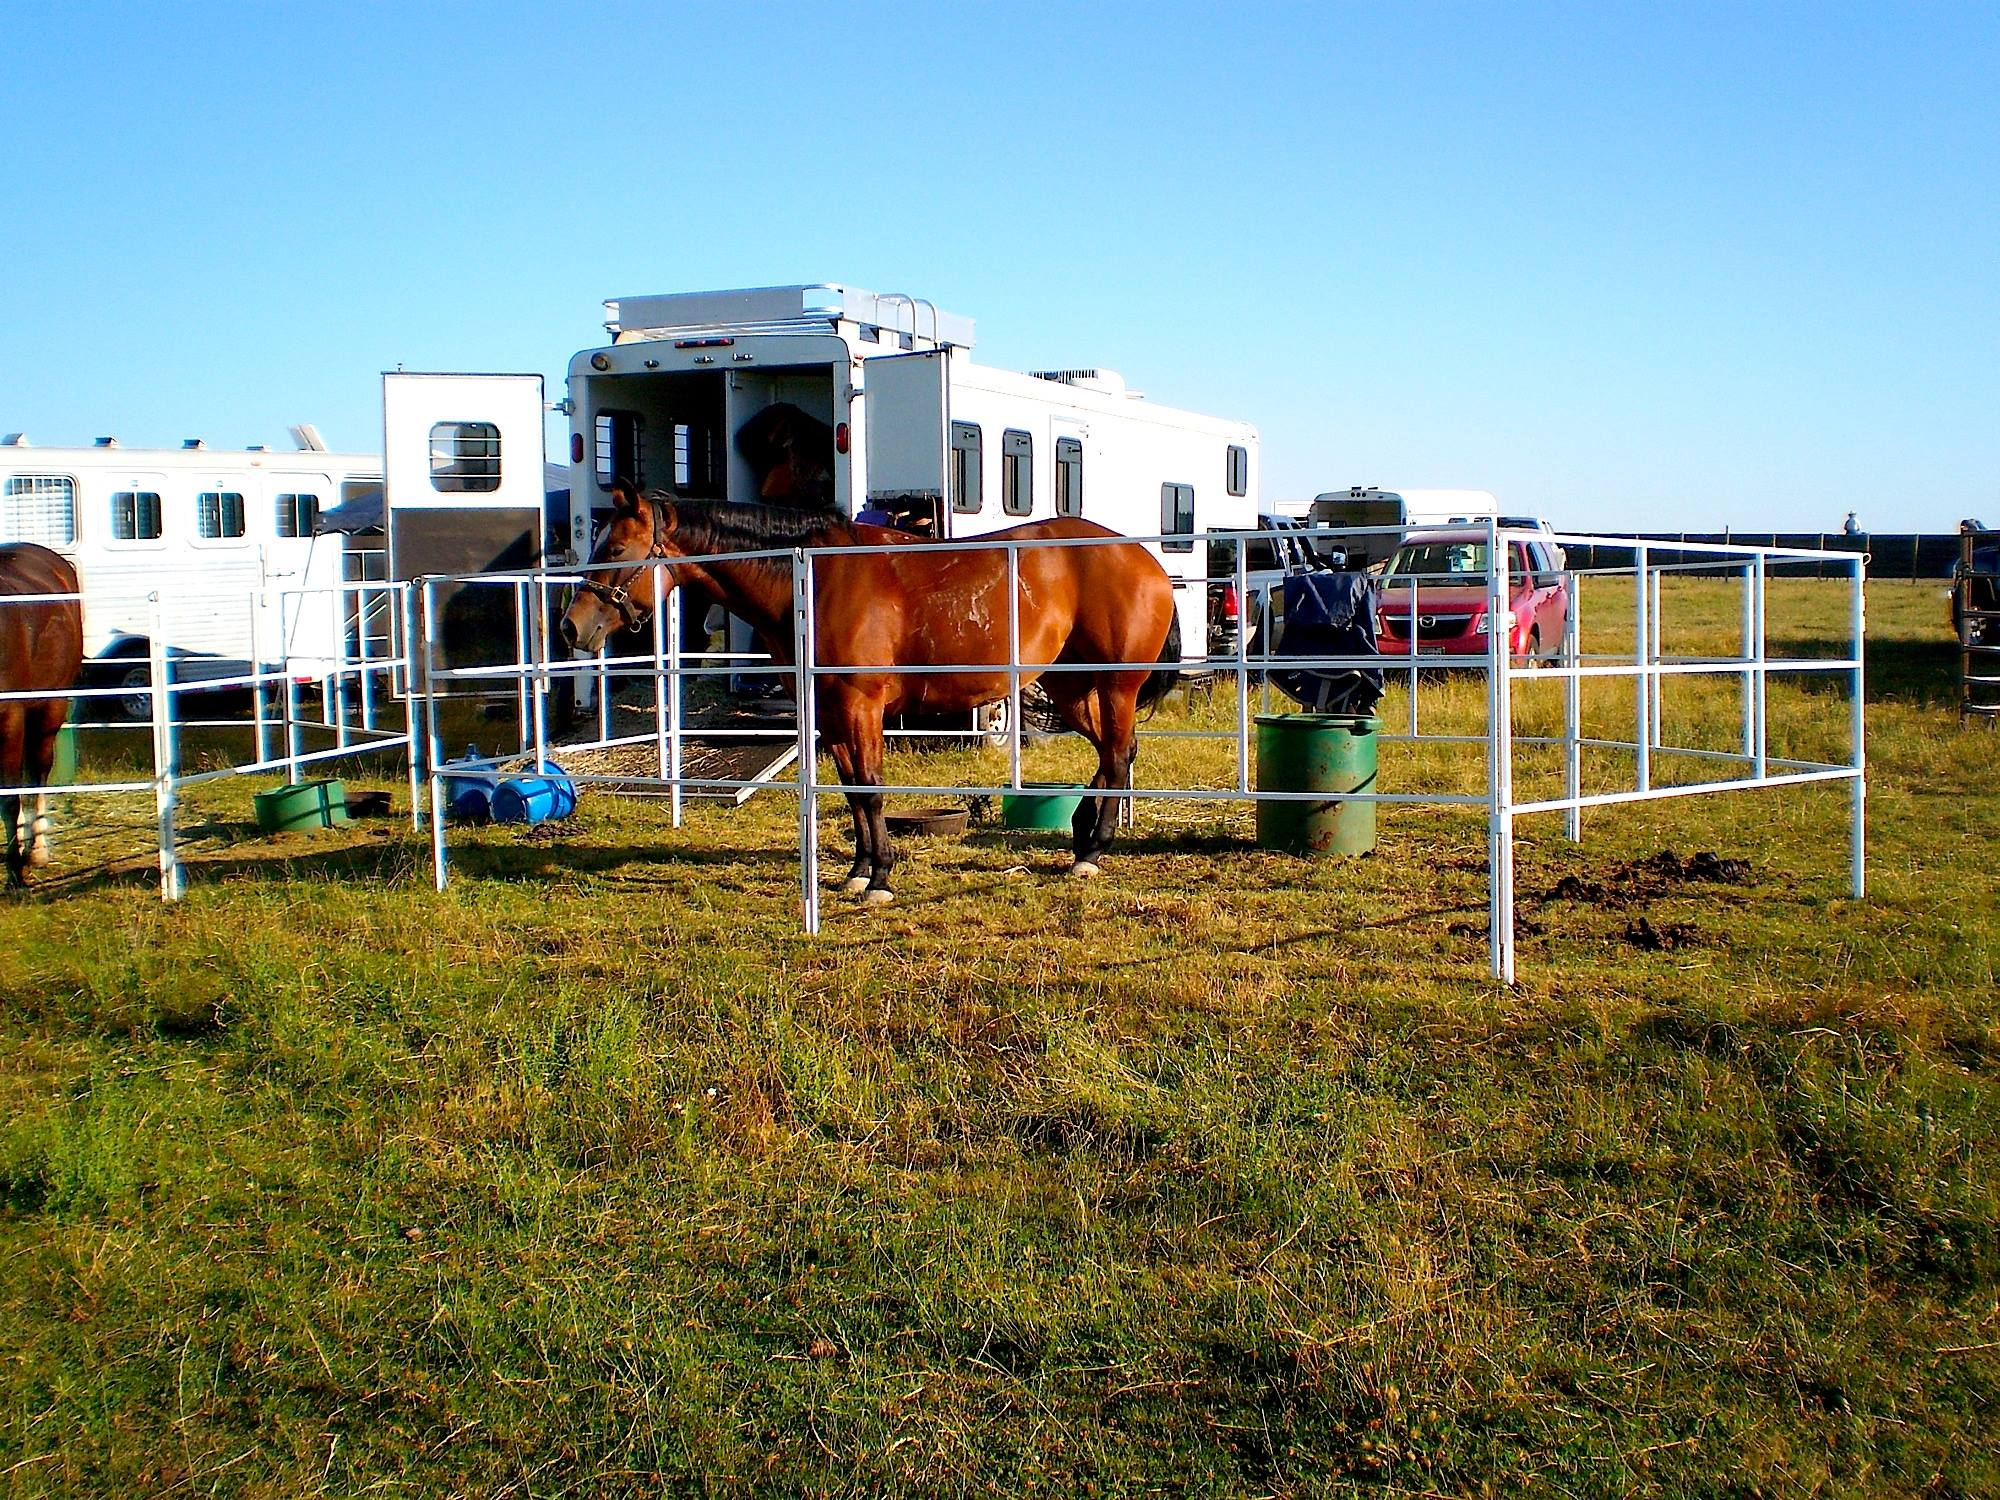 The best travel corral panel system available! Portable horse corrals. Designed for Traveling with Horses. Built for Good.